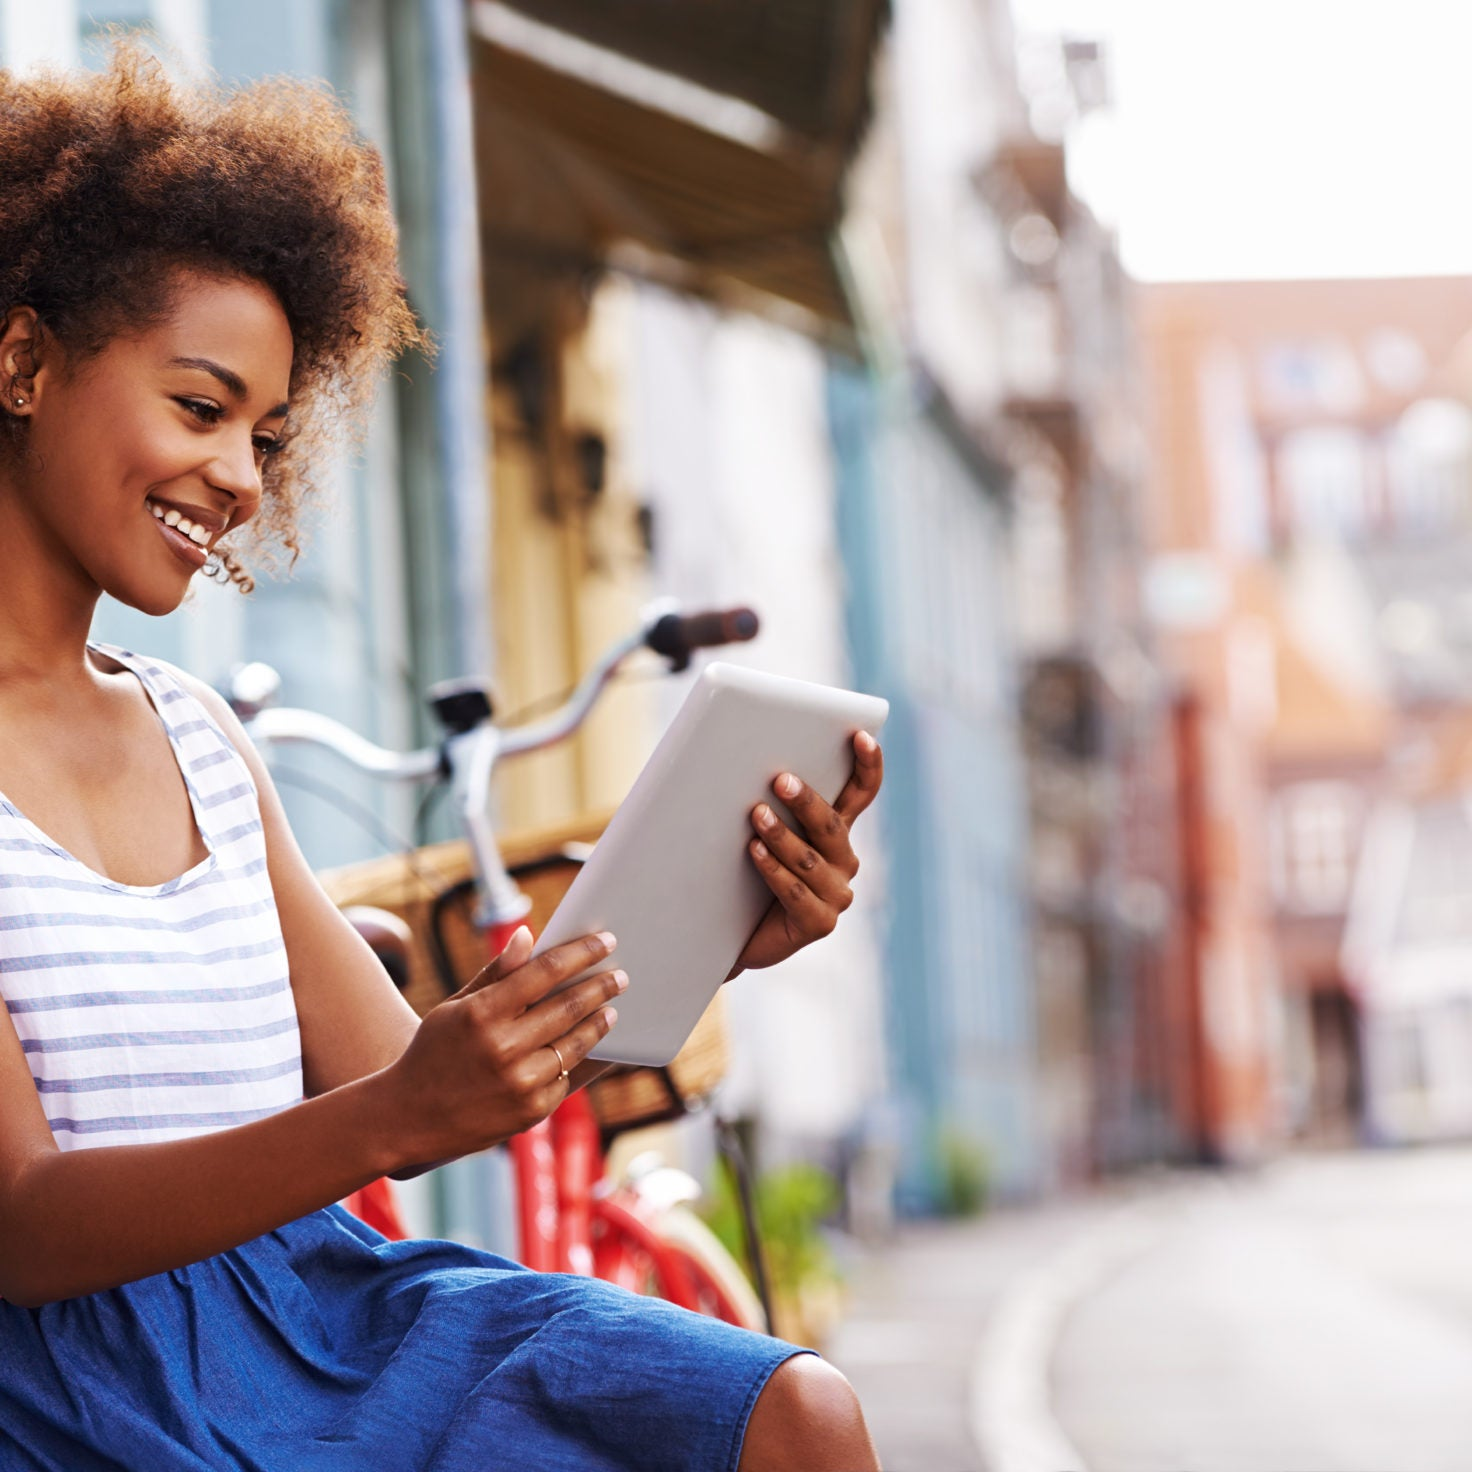 The Upgrade: 4 Apps To Help You Journal On The Go